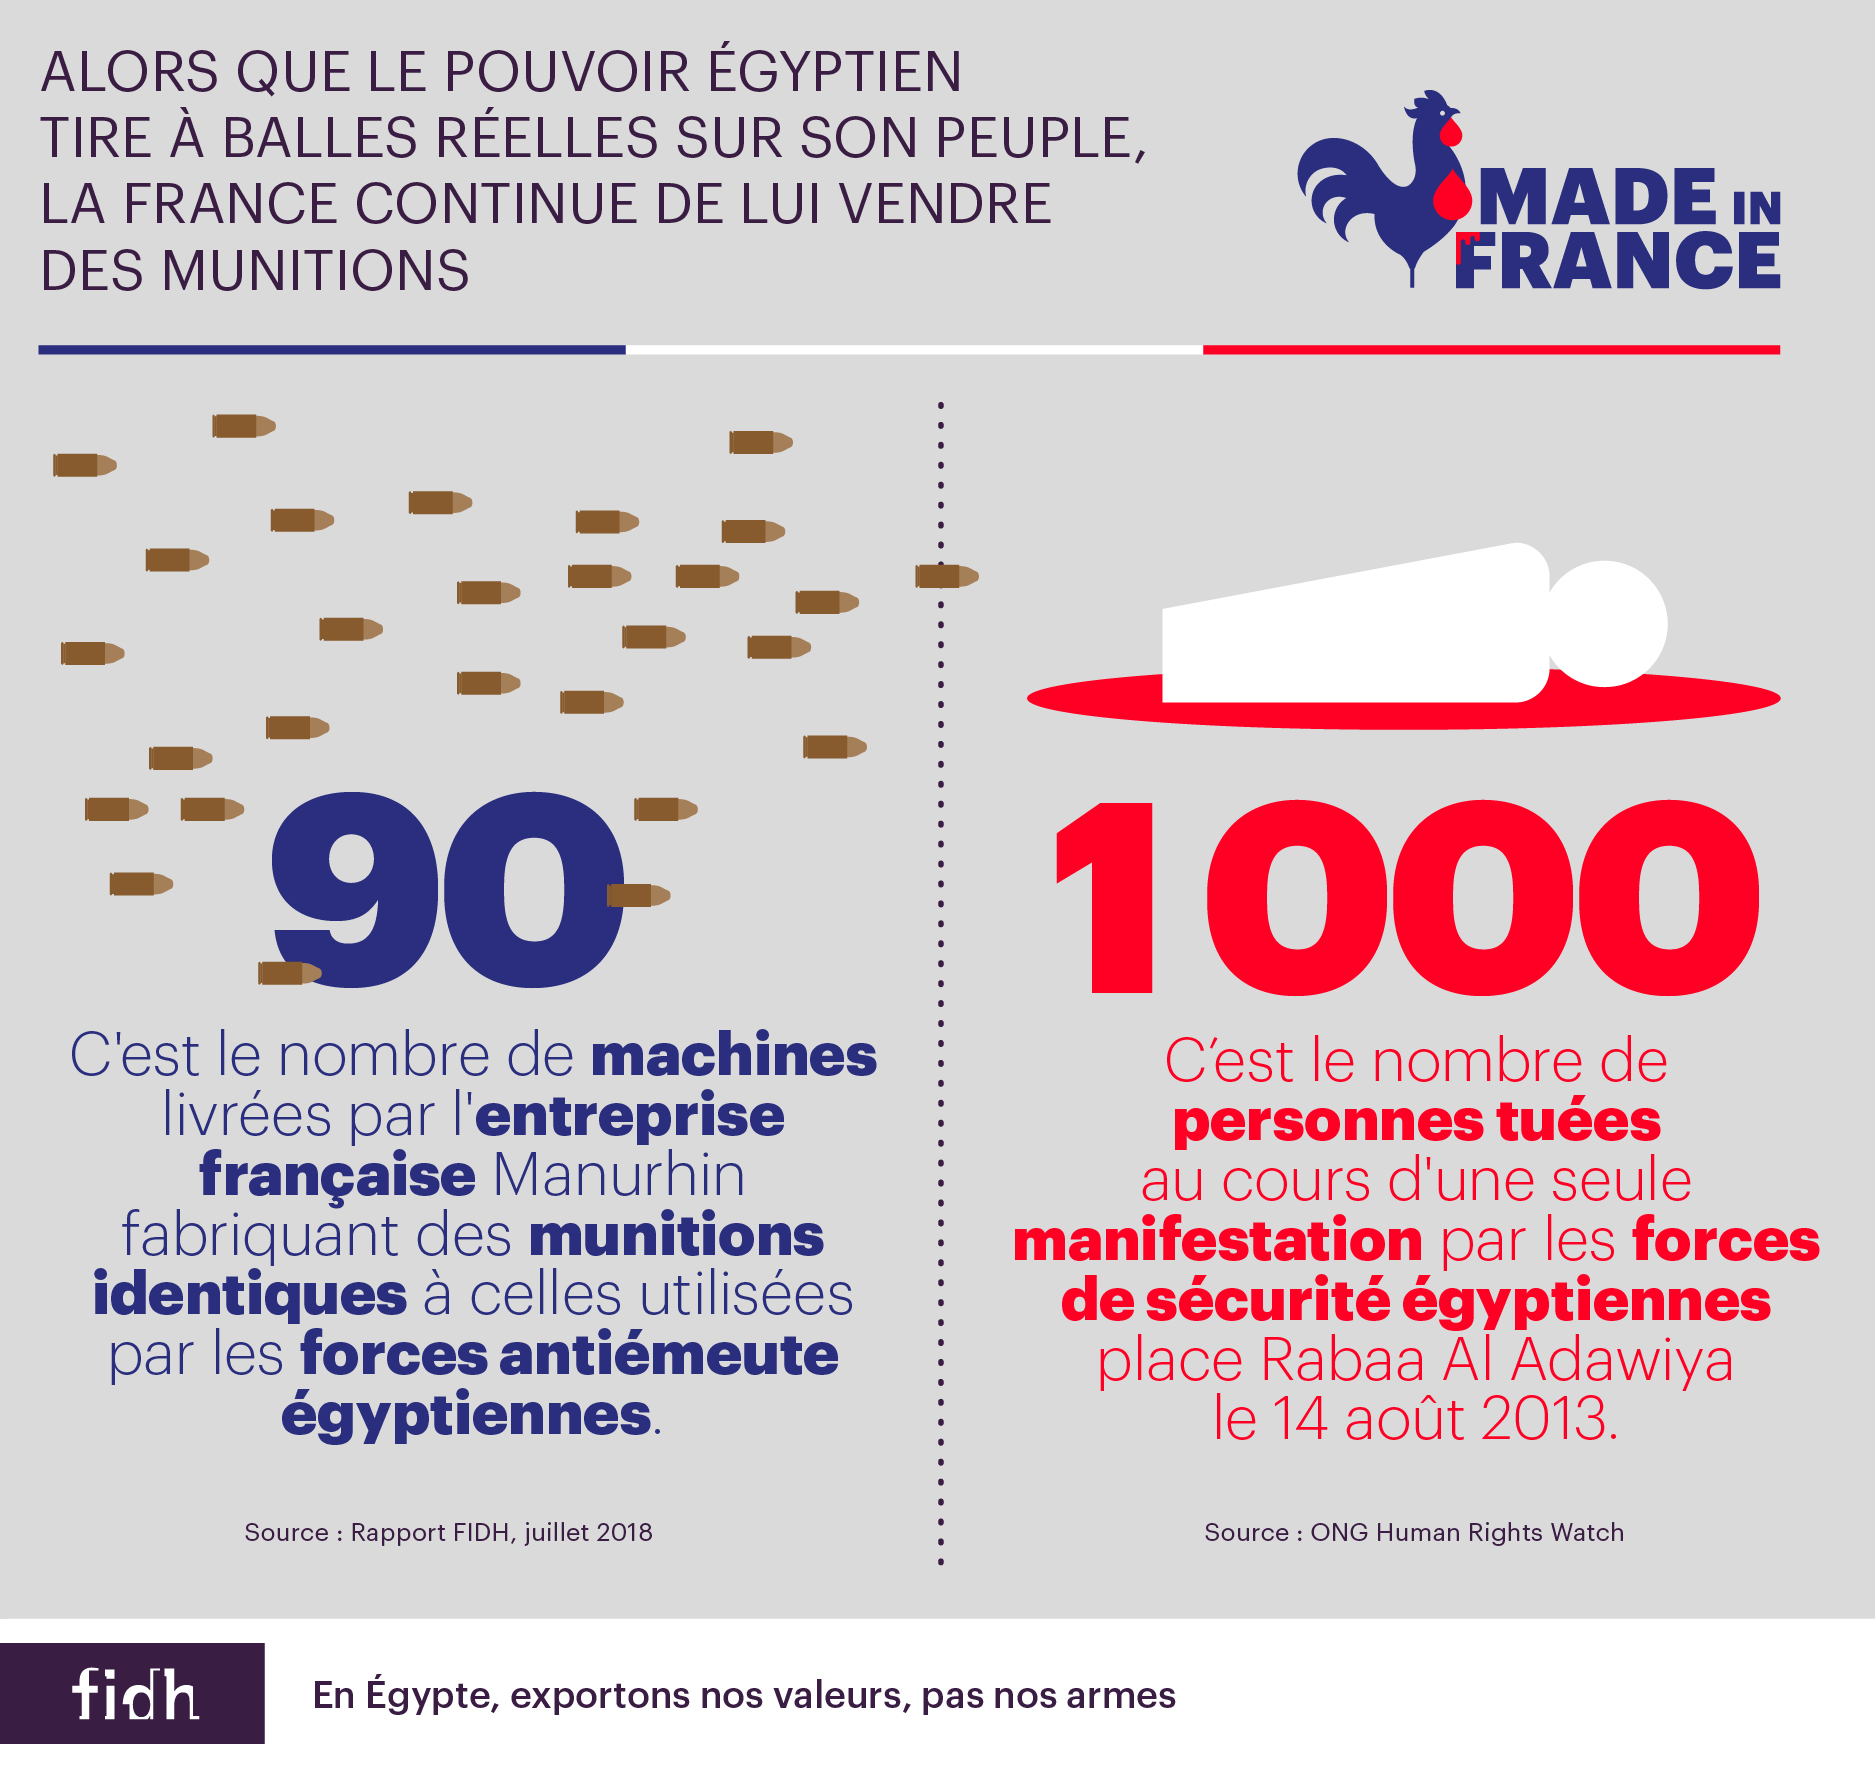 FIDH_MADEINFRANCE_02